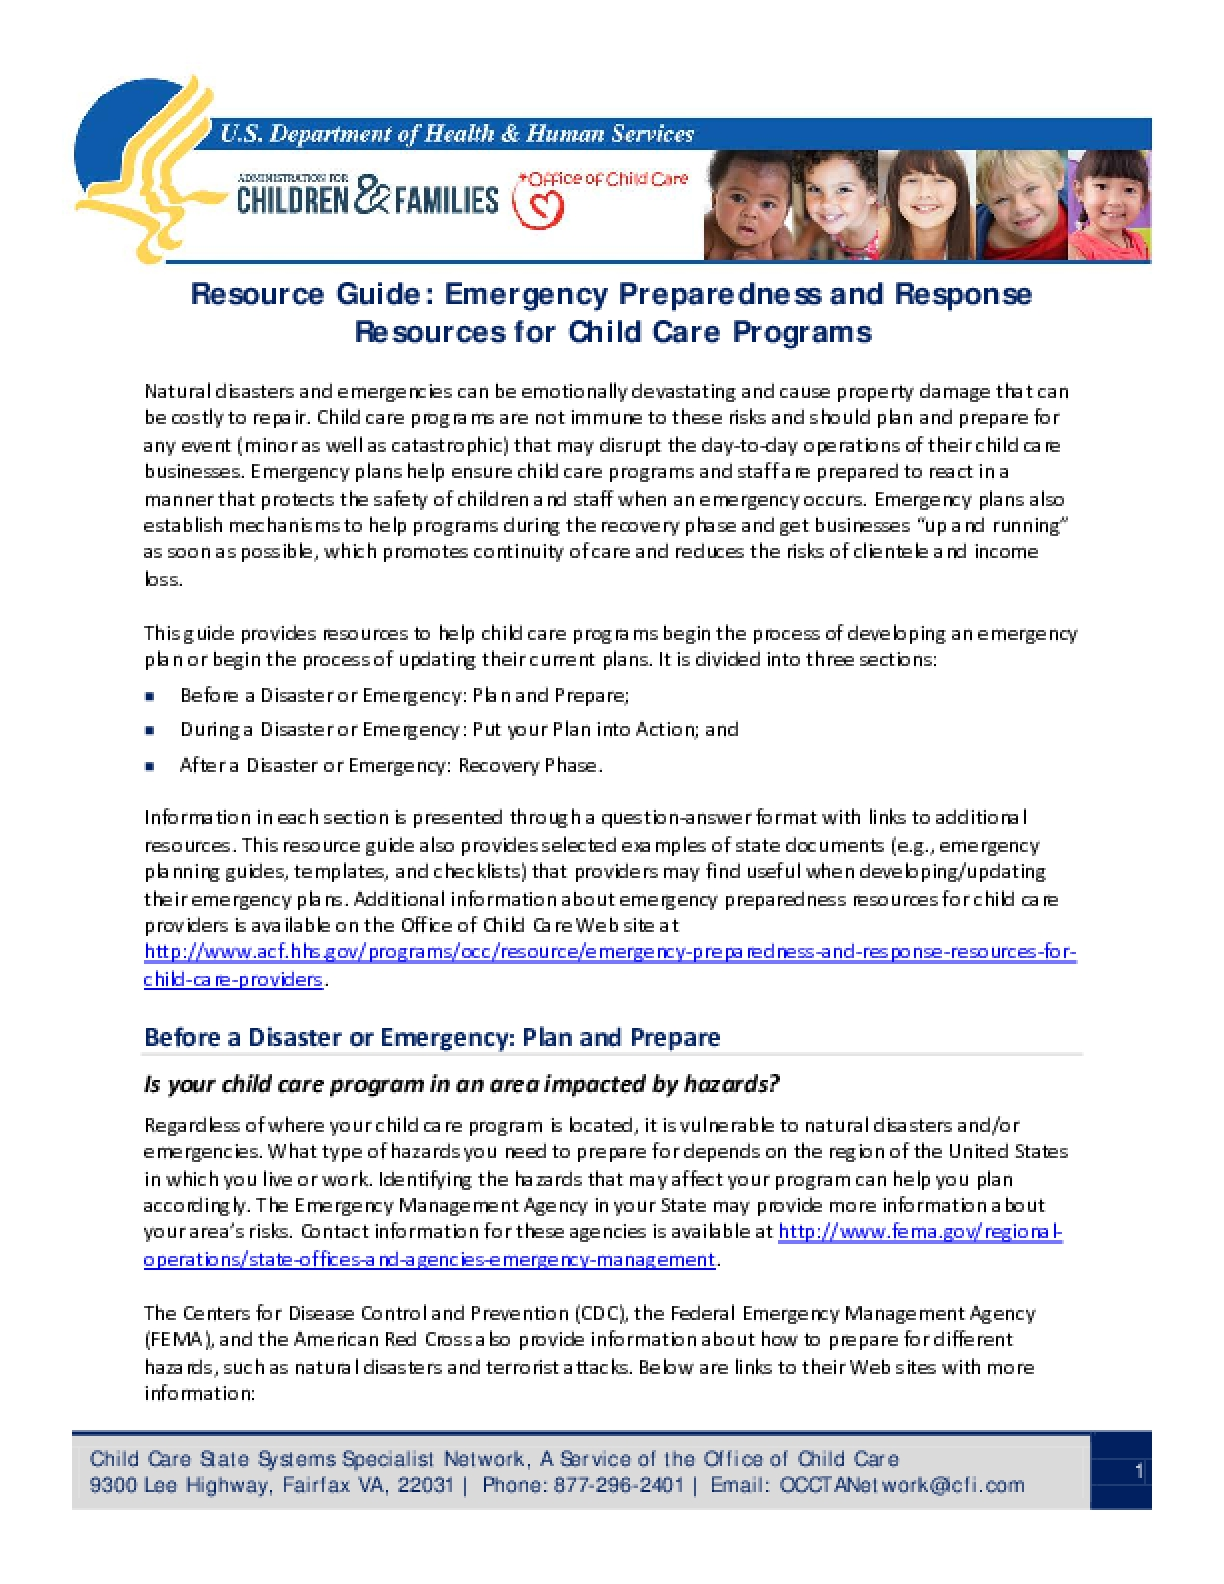 Resource Guide: Emergency Preparedness and Response Resources for child Care Programs